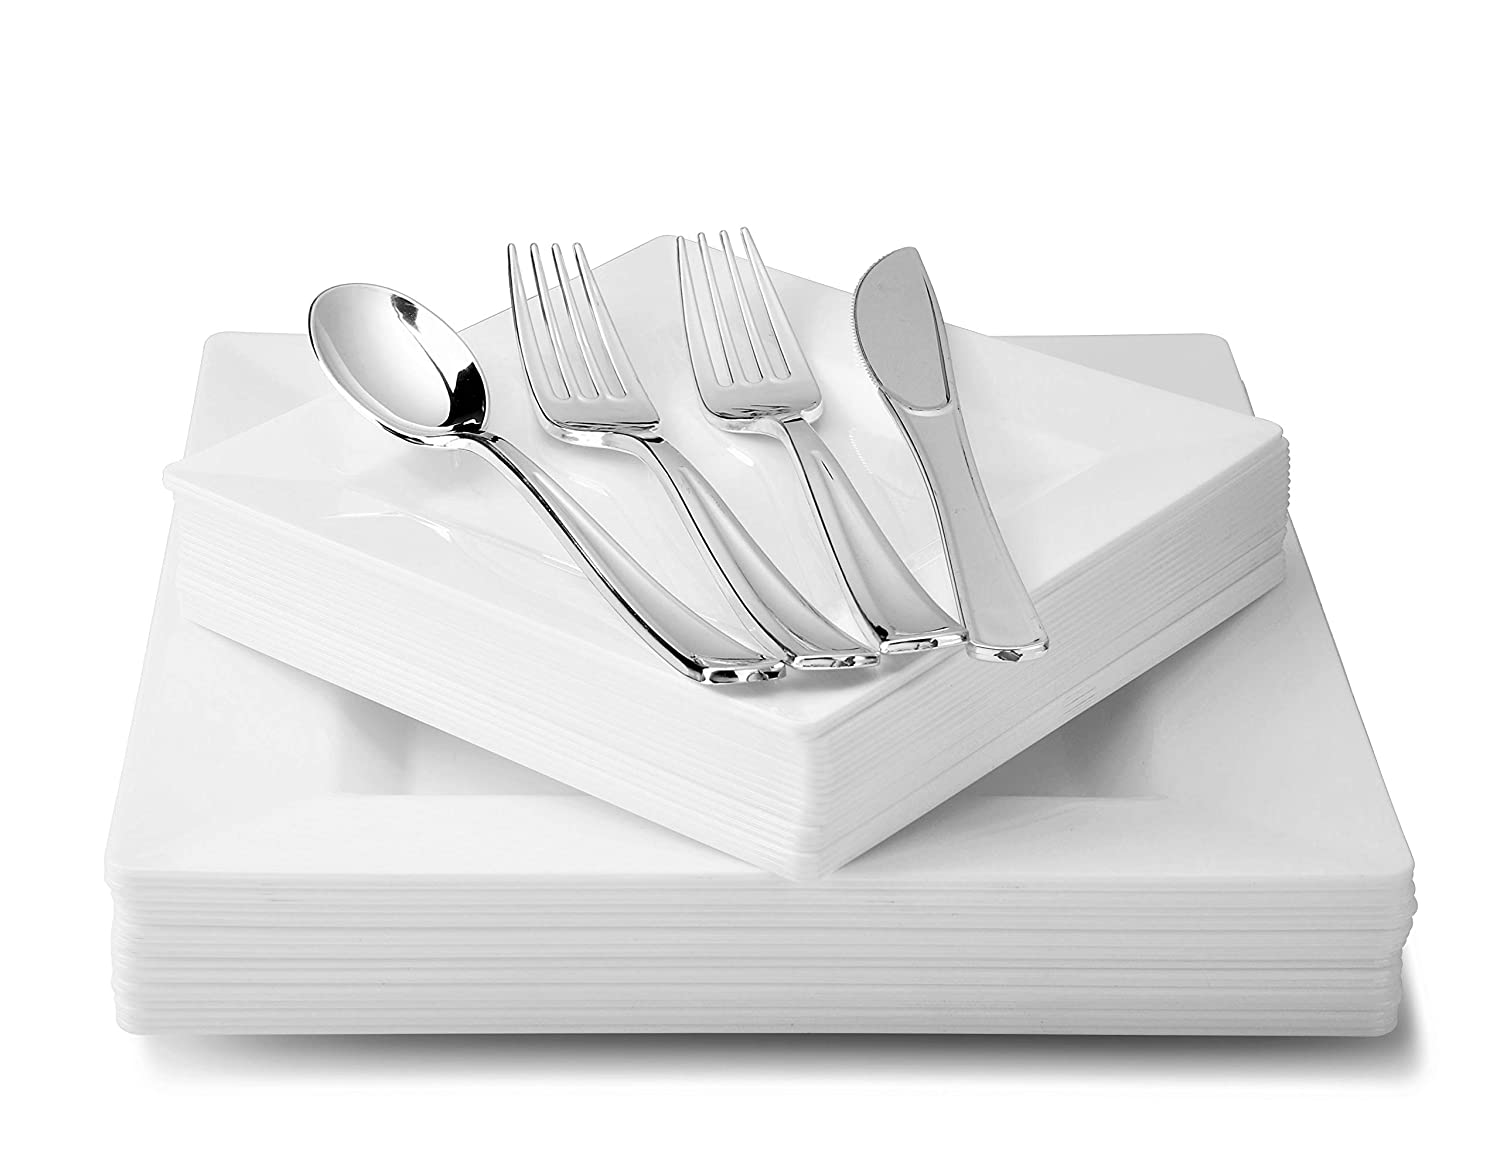 Square White 720 pcs (120 guests) OCCASIONS 720 PCS   120 GUEST Wedding Disposable Plastic Plate and Silverware Combo Set (Diamond White Silver Plates, Silver Silverware)